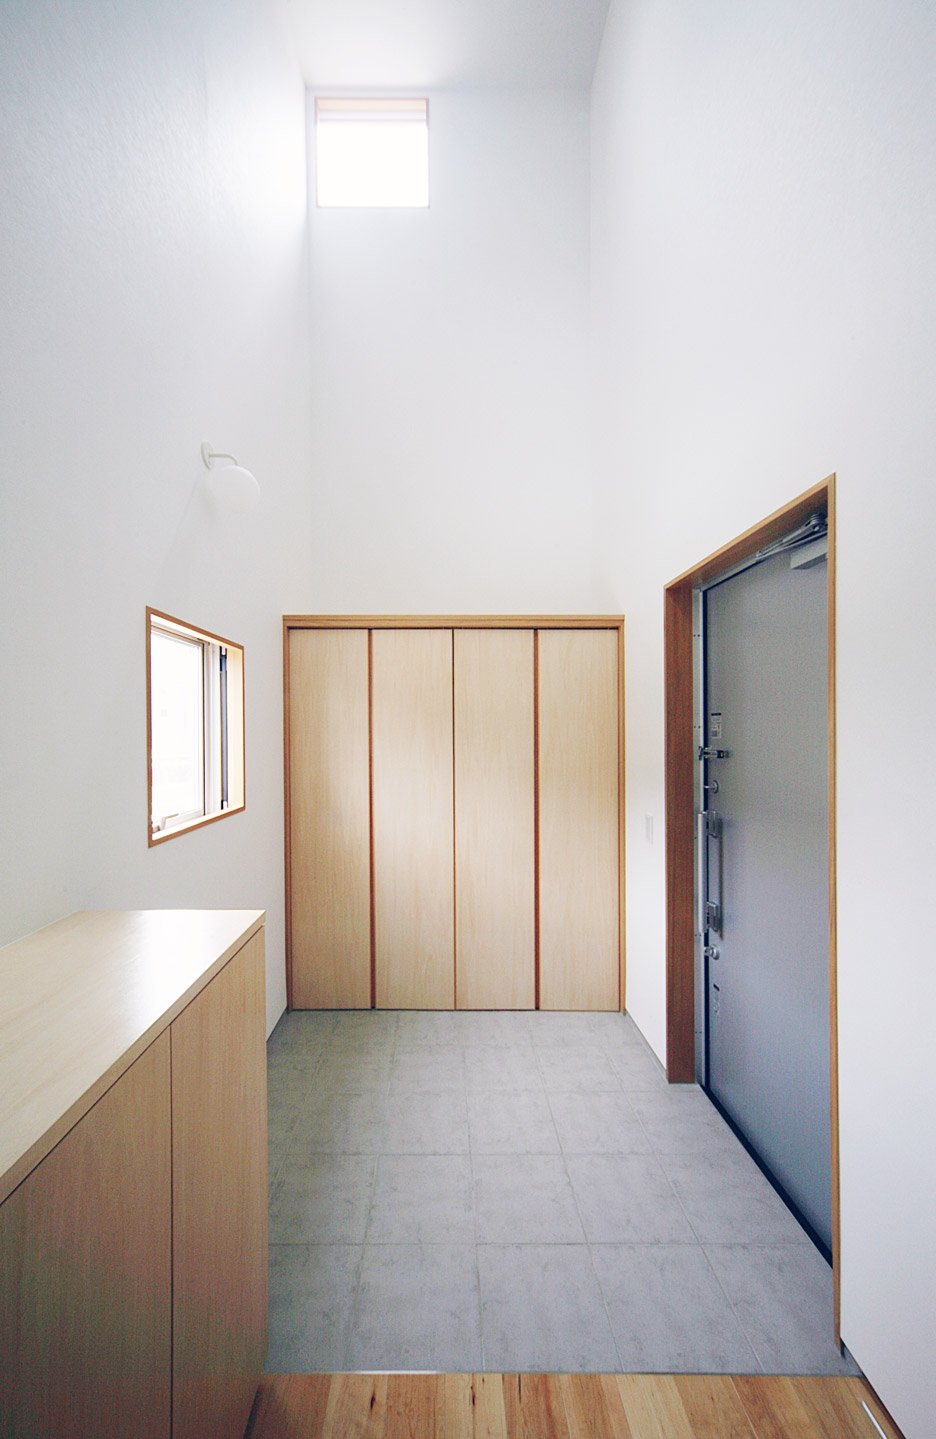 House in Kosai, Japan by Shuhei Goto Architects